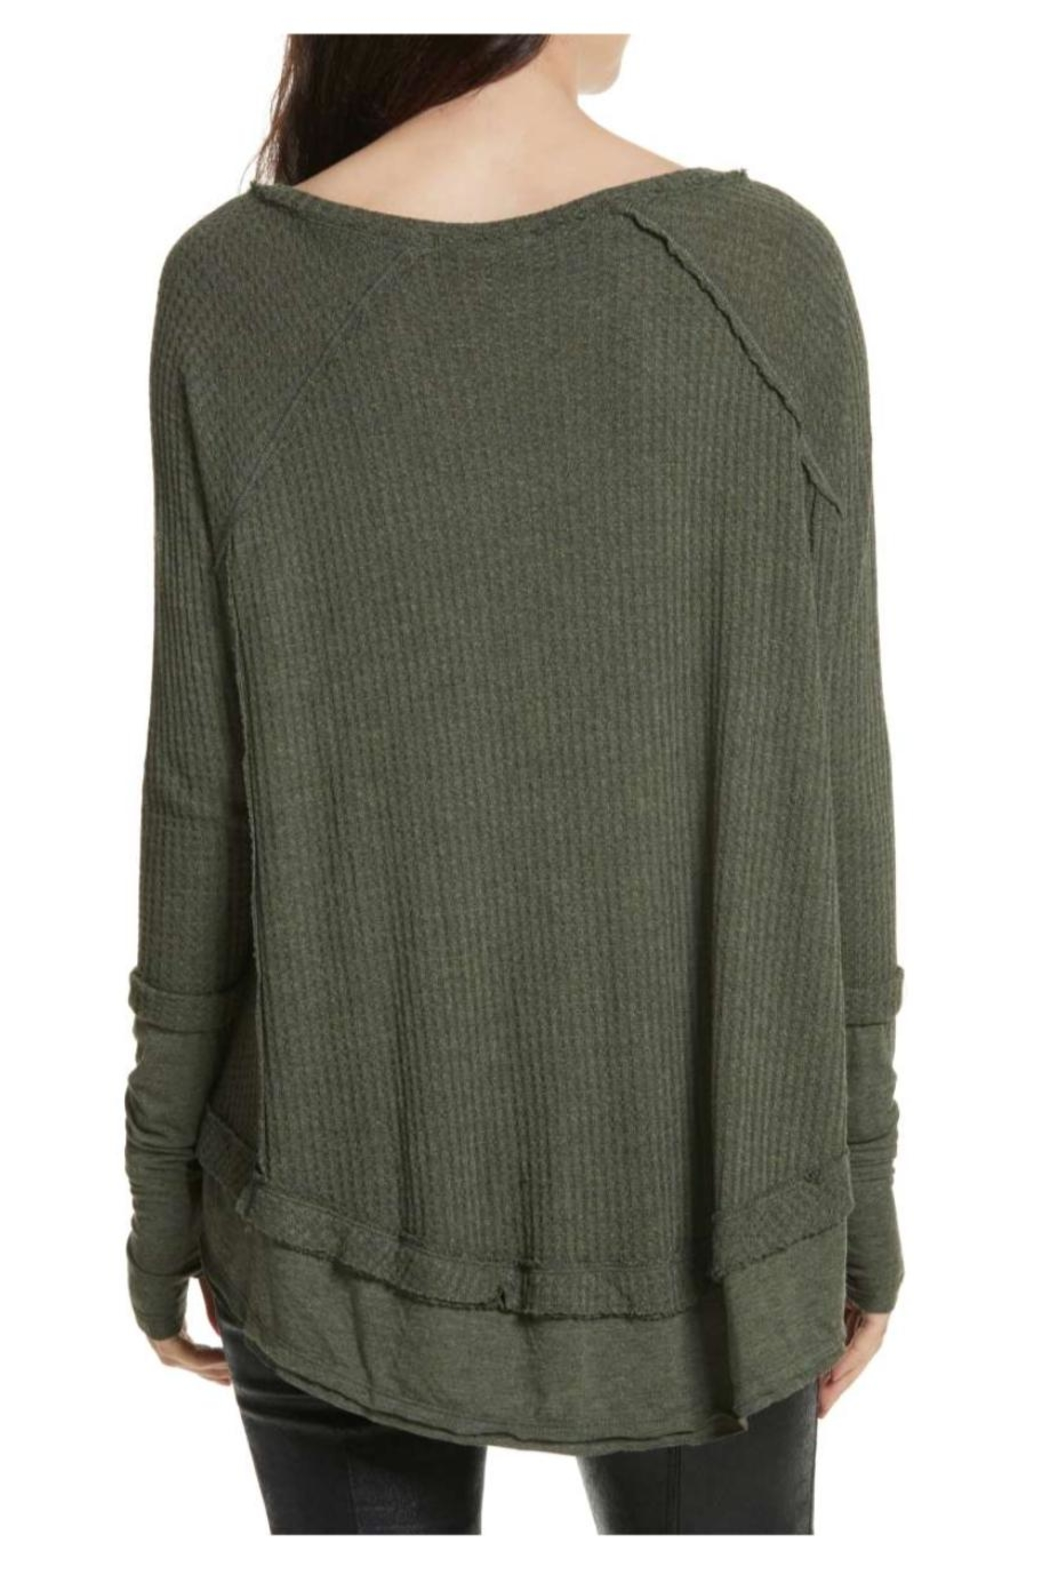 Free People Laguna Themal Top - Front Full Image